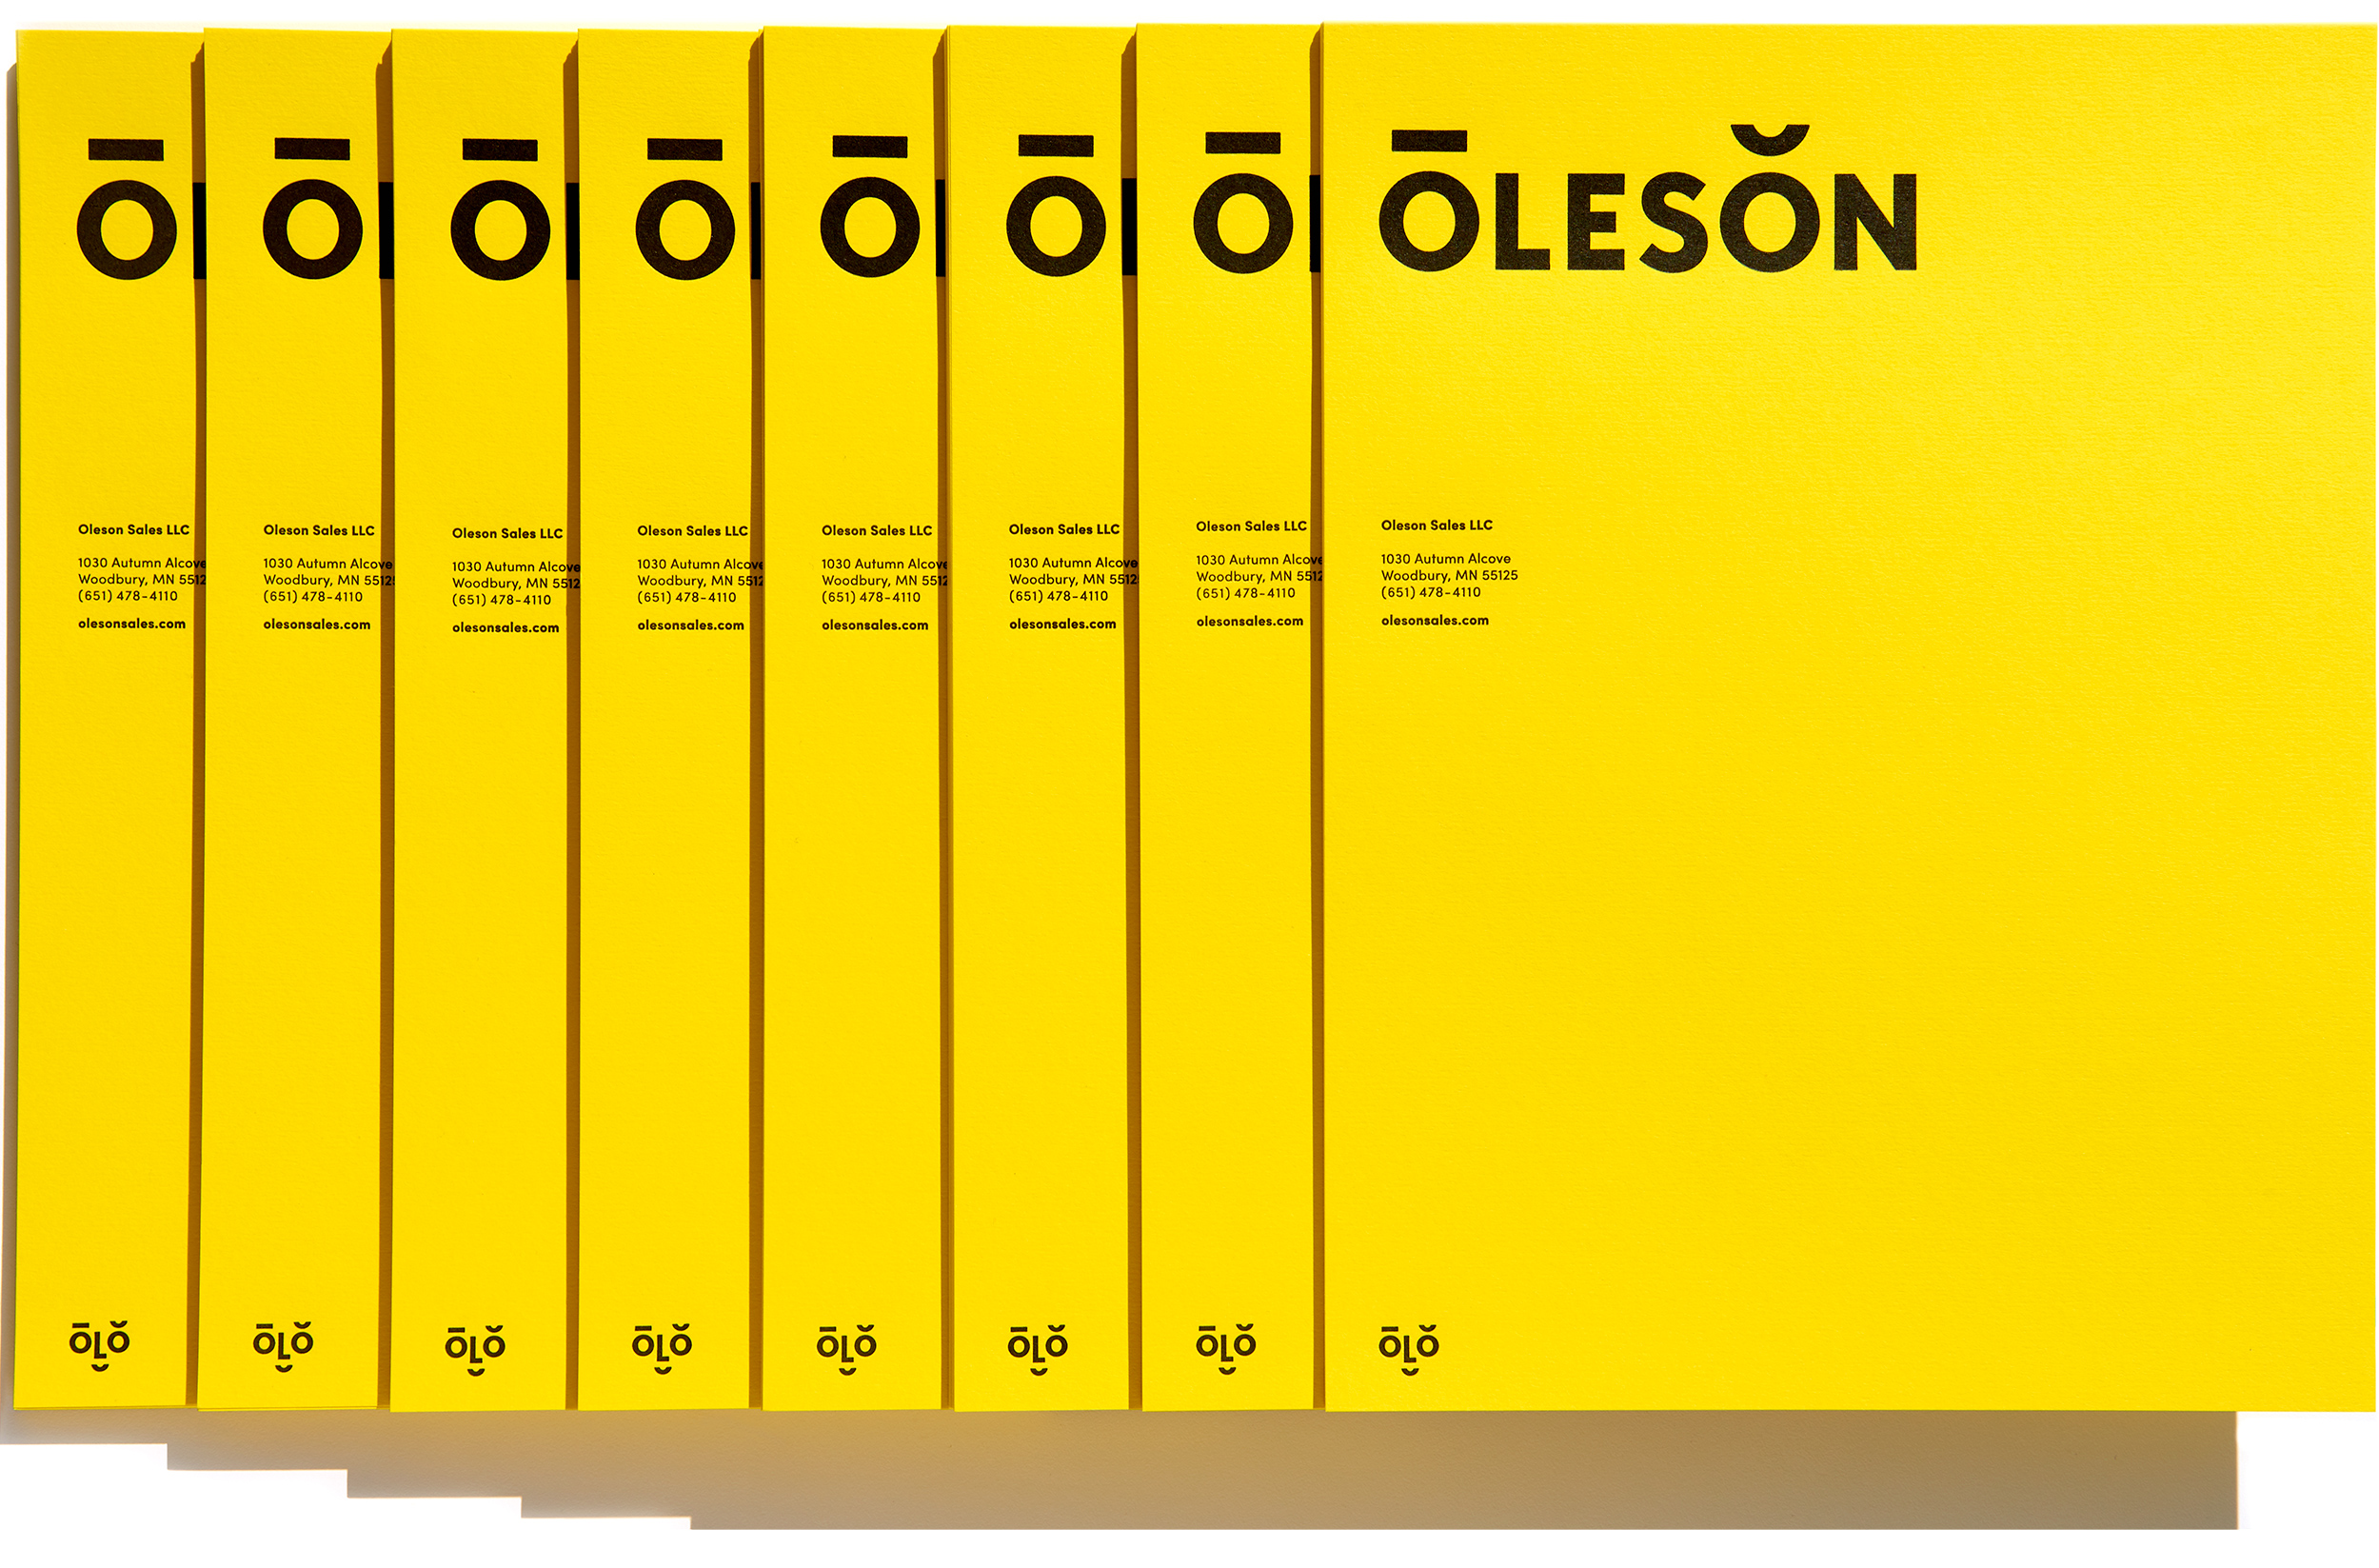 Oleson brand identity designed by Abby Haddican at Werner Design Werks